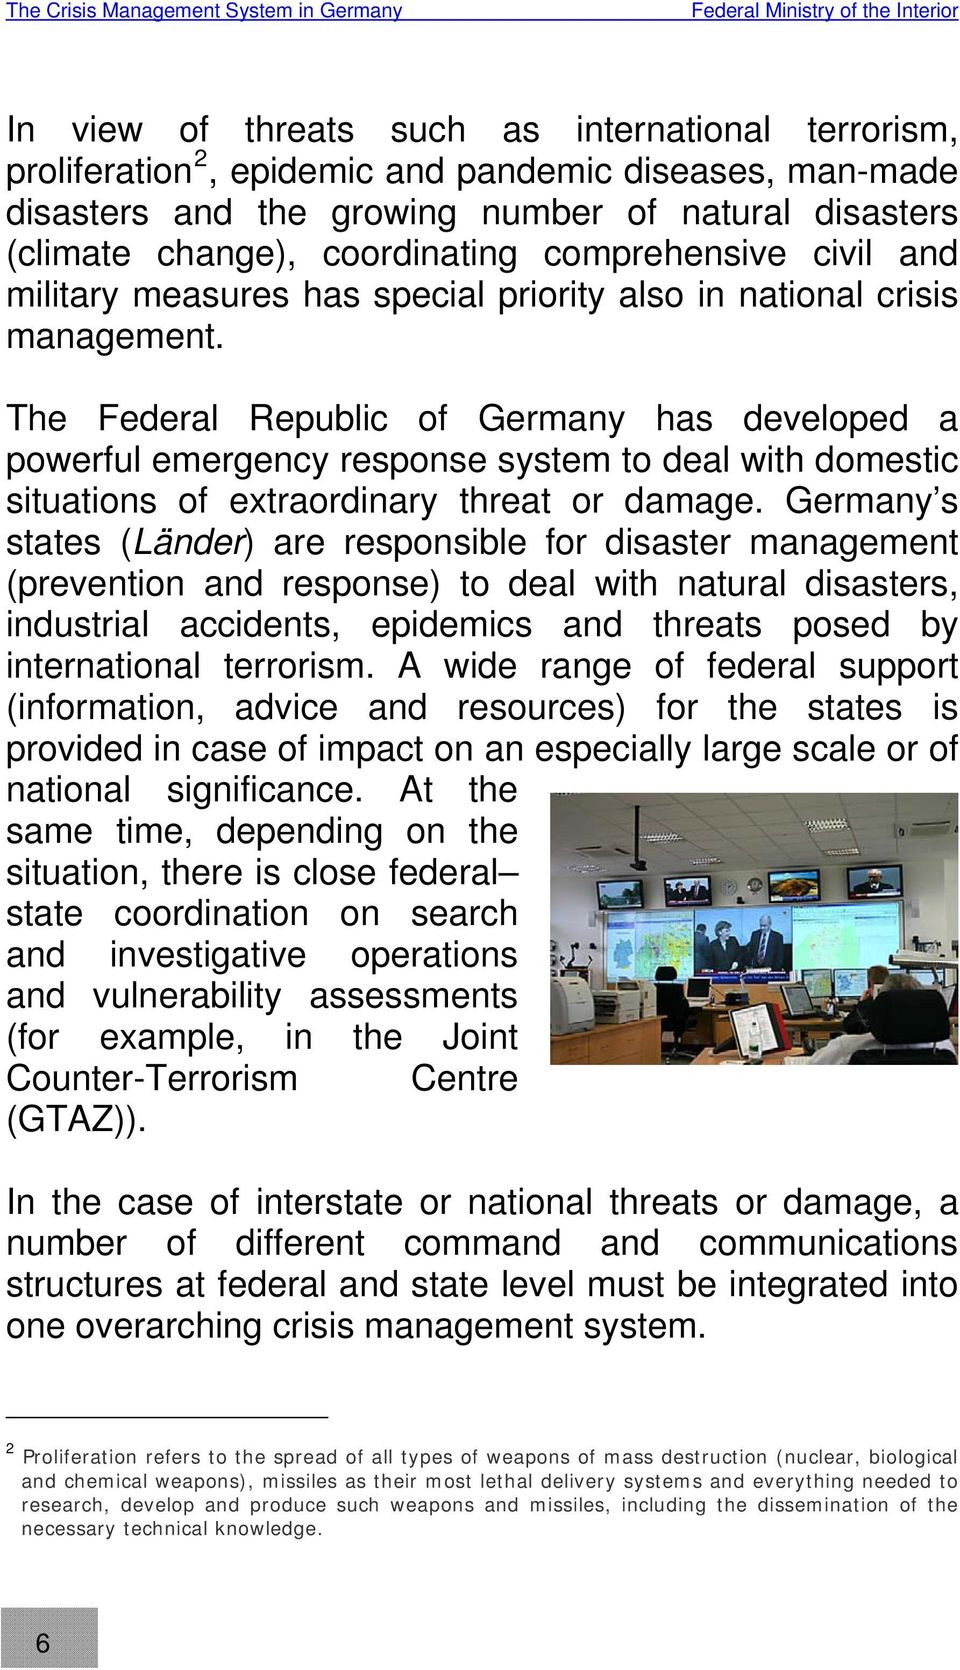 The Federal Republic of Germany has developed a powerful emergency response system to deal with domestic situations of extraordinary threat or damage.